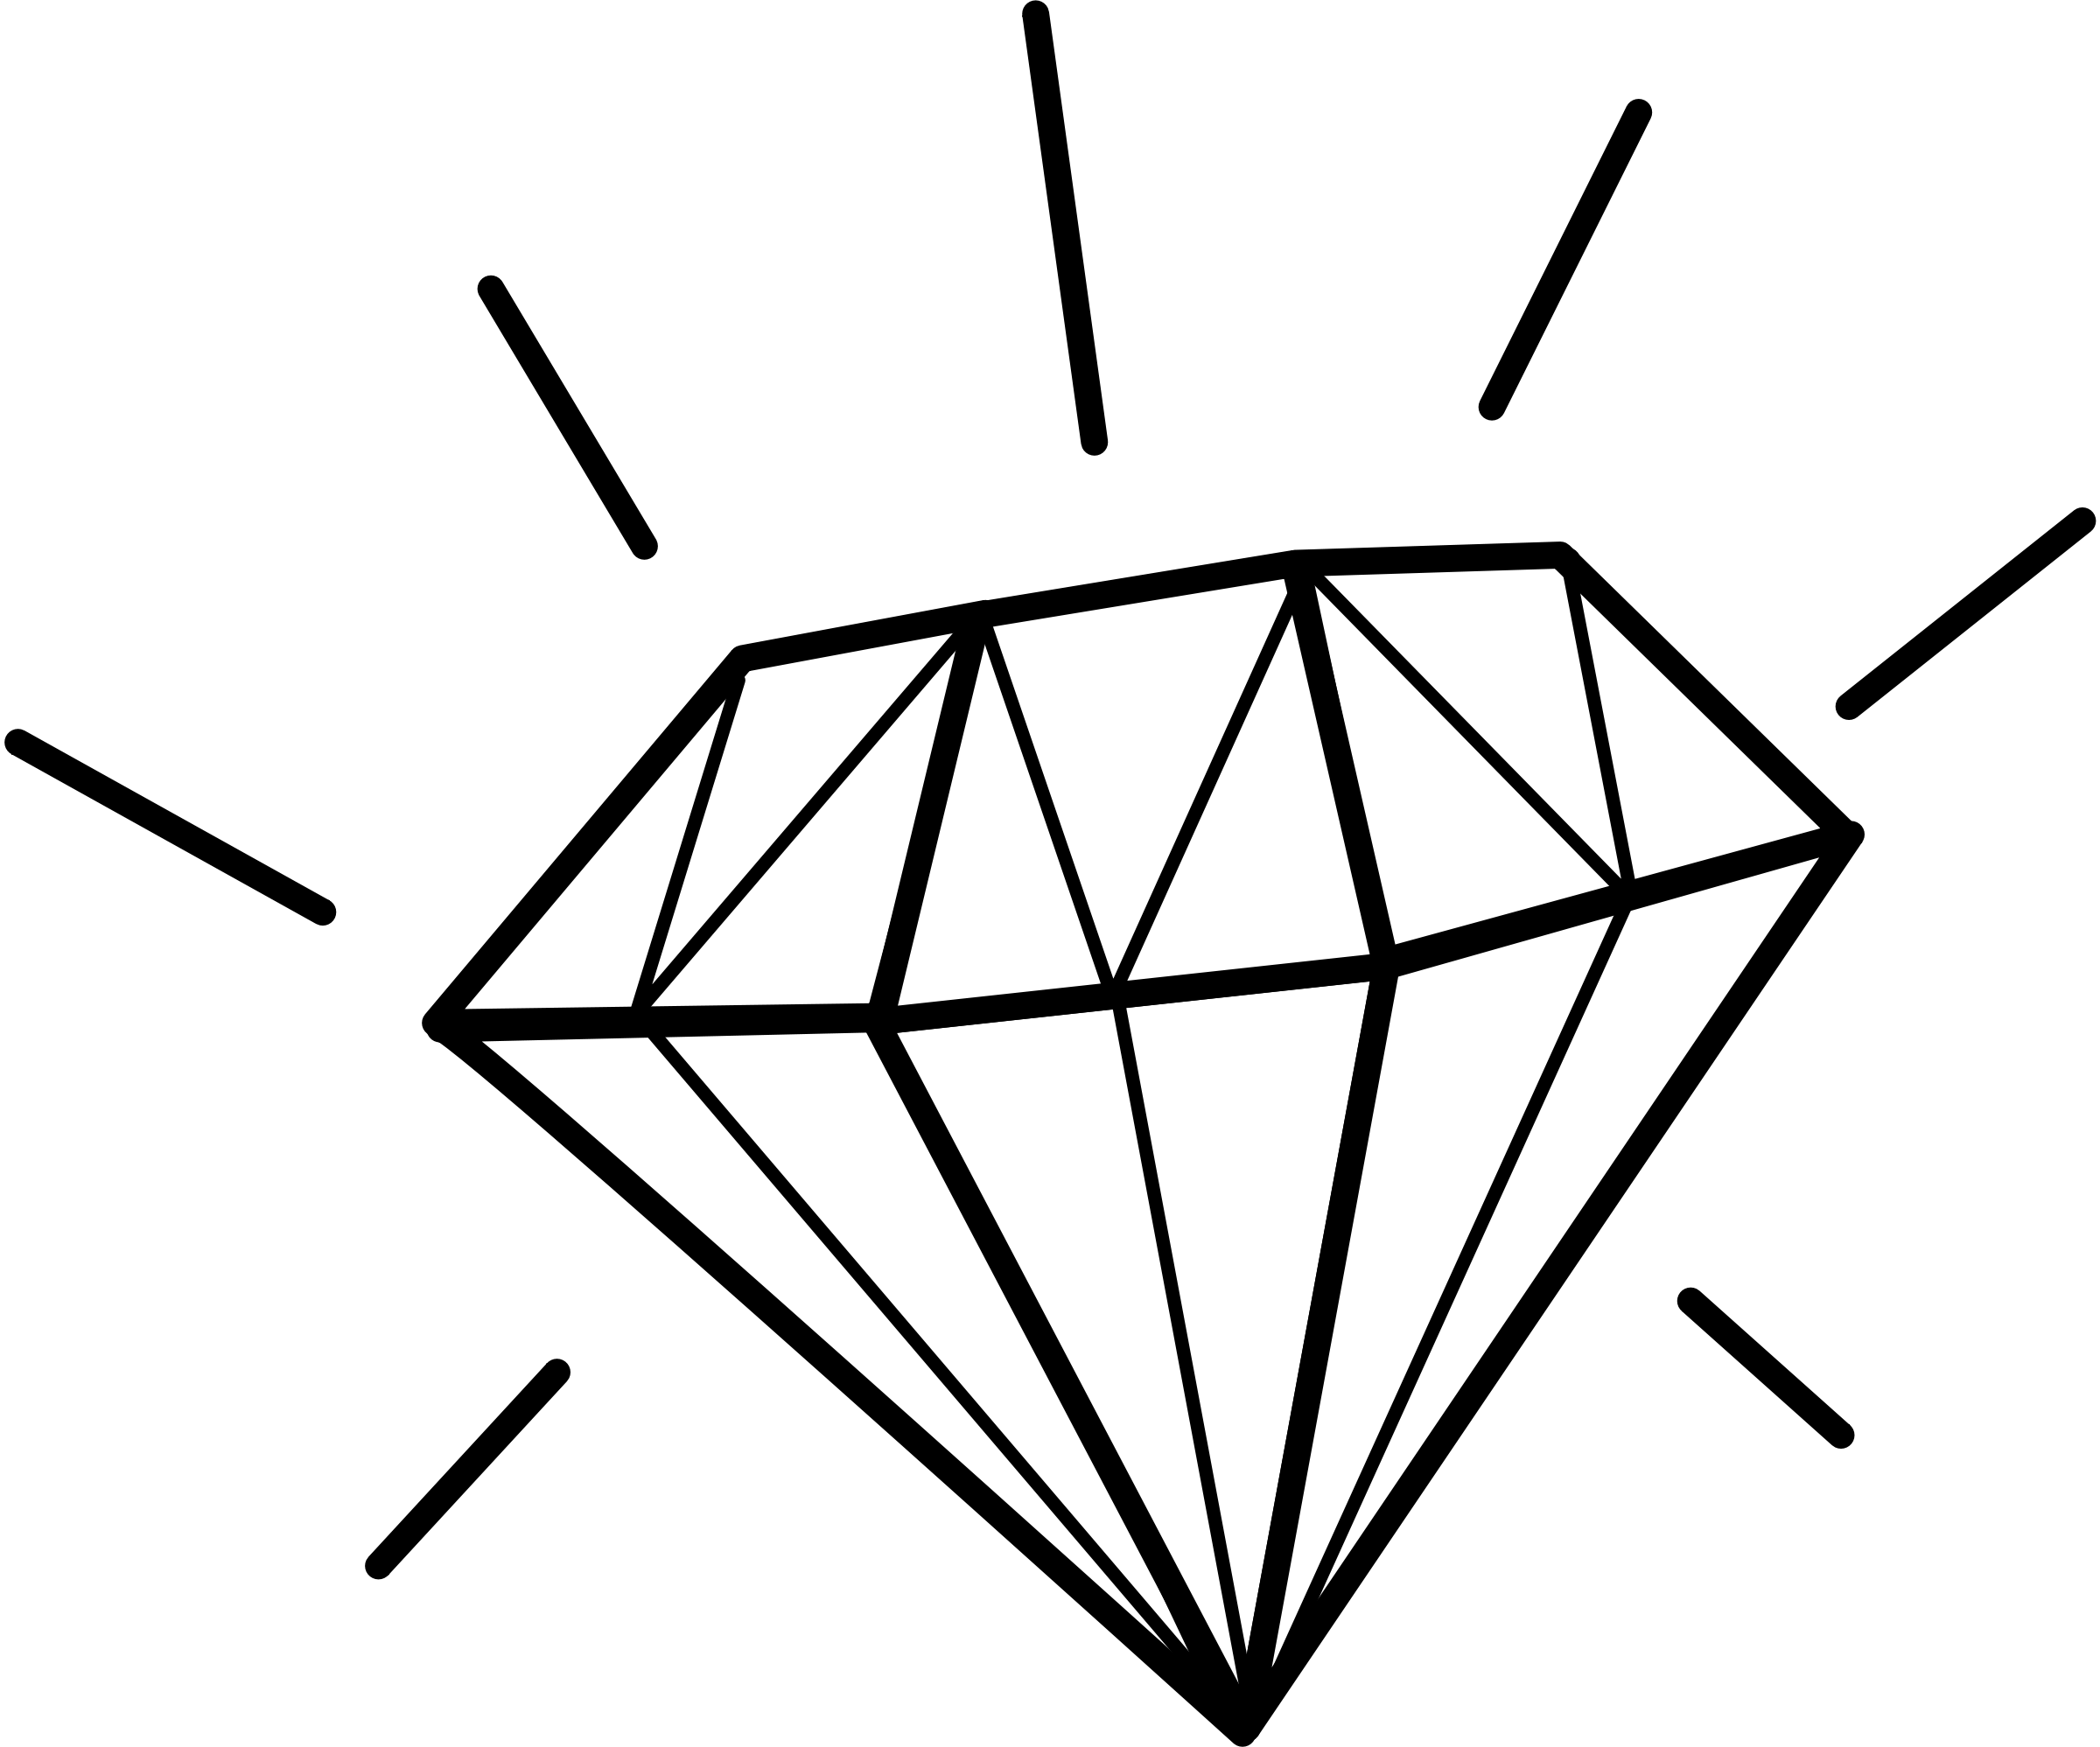 Diamond clipart #13, Download drawings